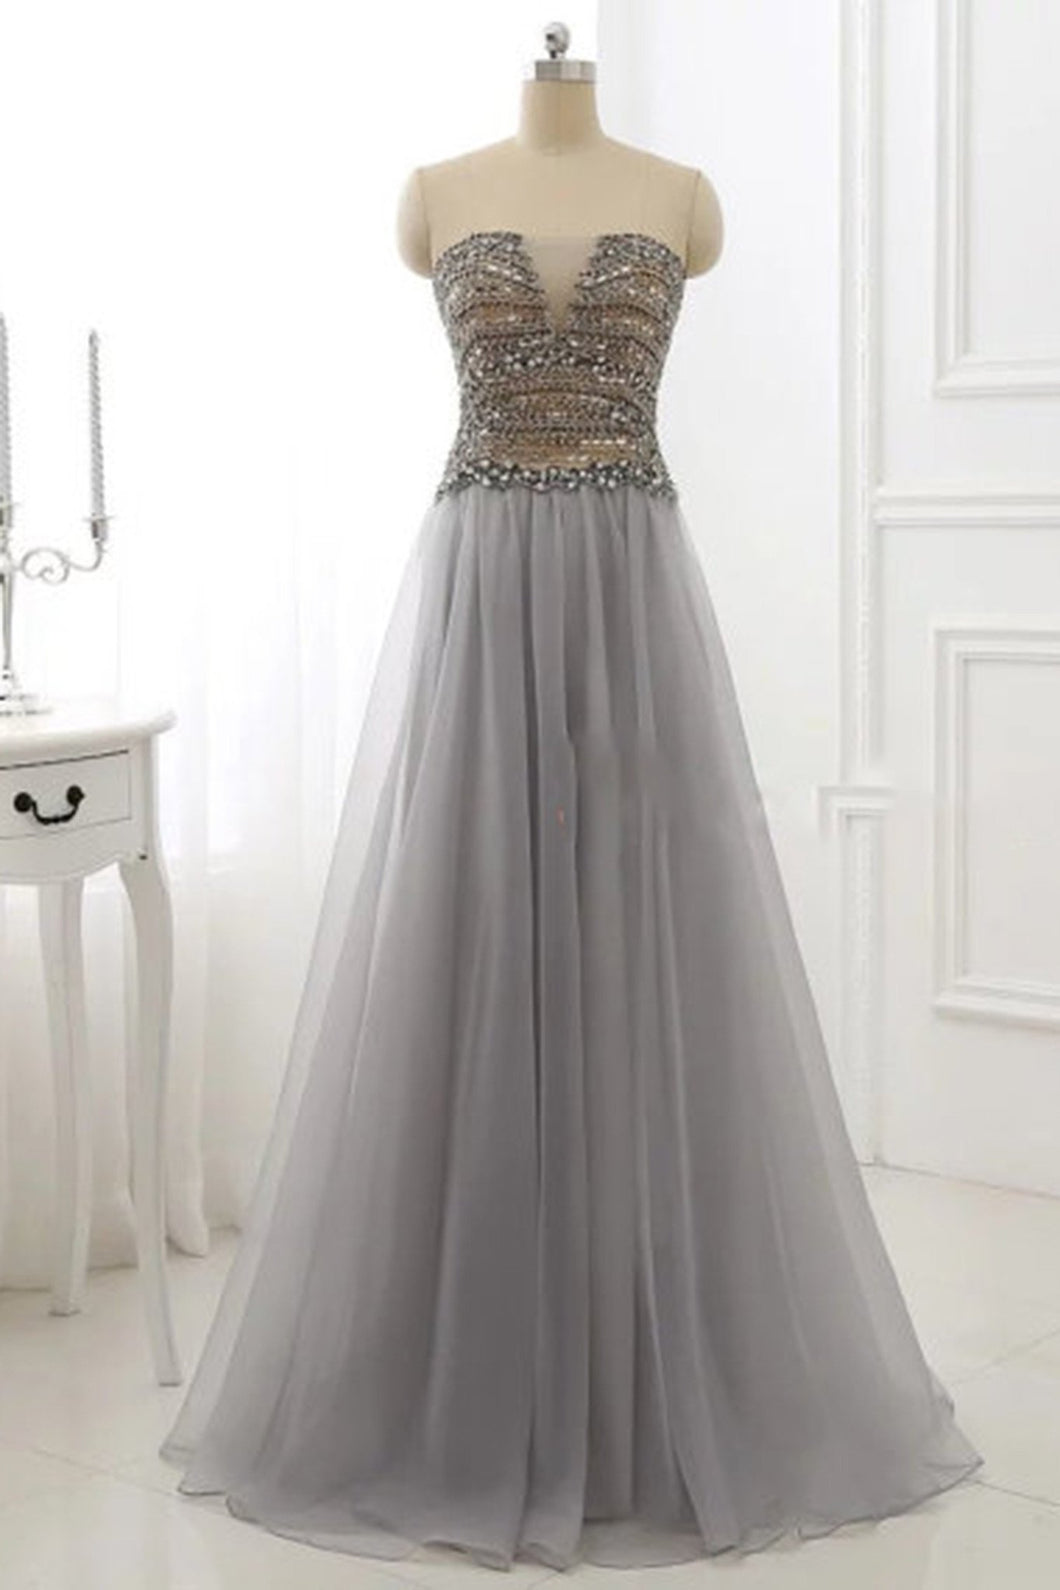 Sweet 16 Dresses | Gray organza A-line beading sweetheart long dresses,evening dresses for teens